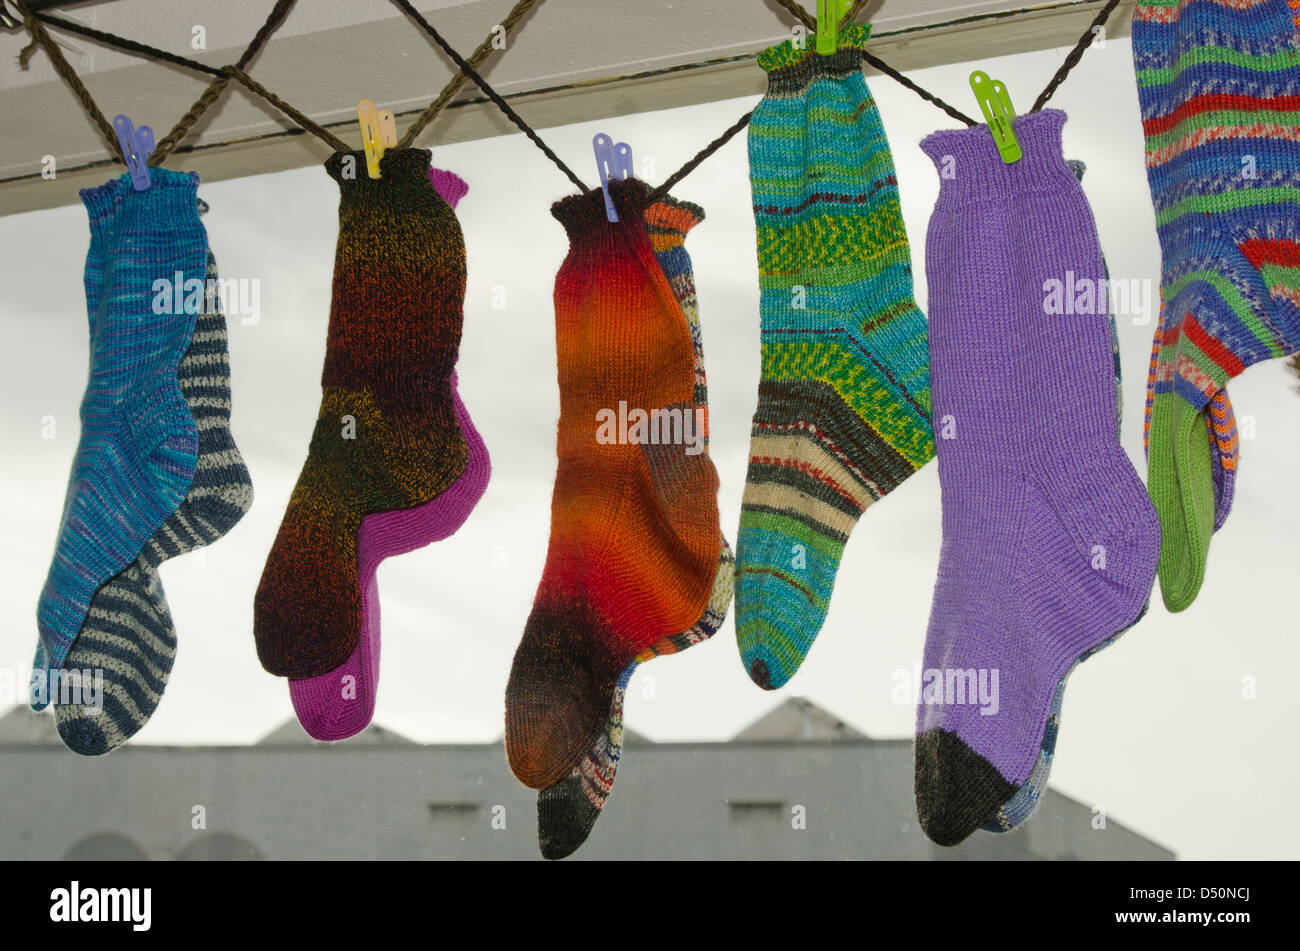 Several pair of wool socks hang in a shop window, enticing buyers thinking about oncoming winter cold. - Stock Image